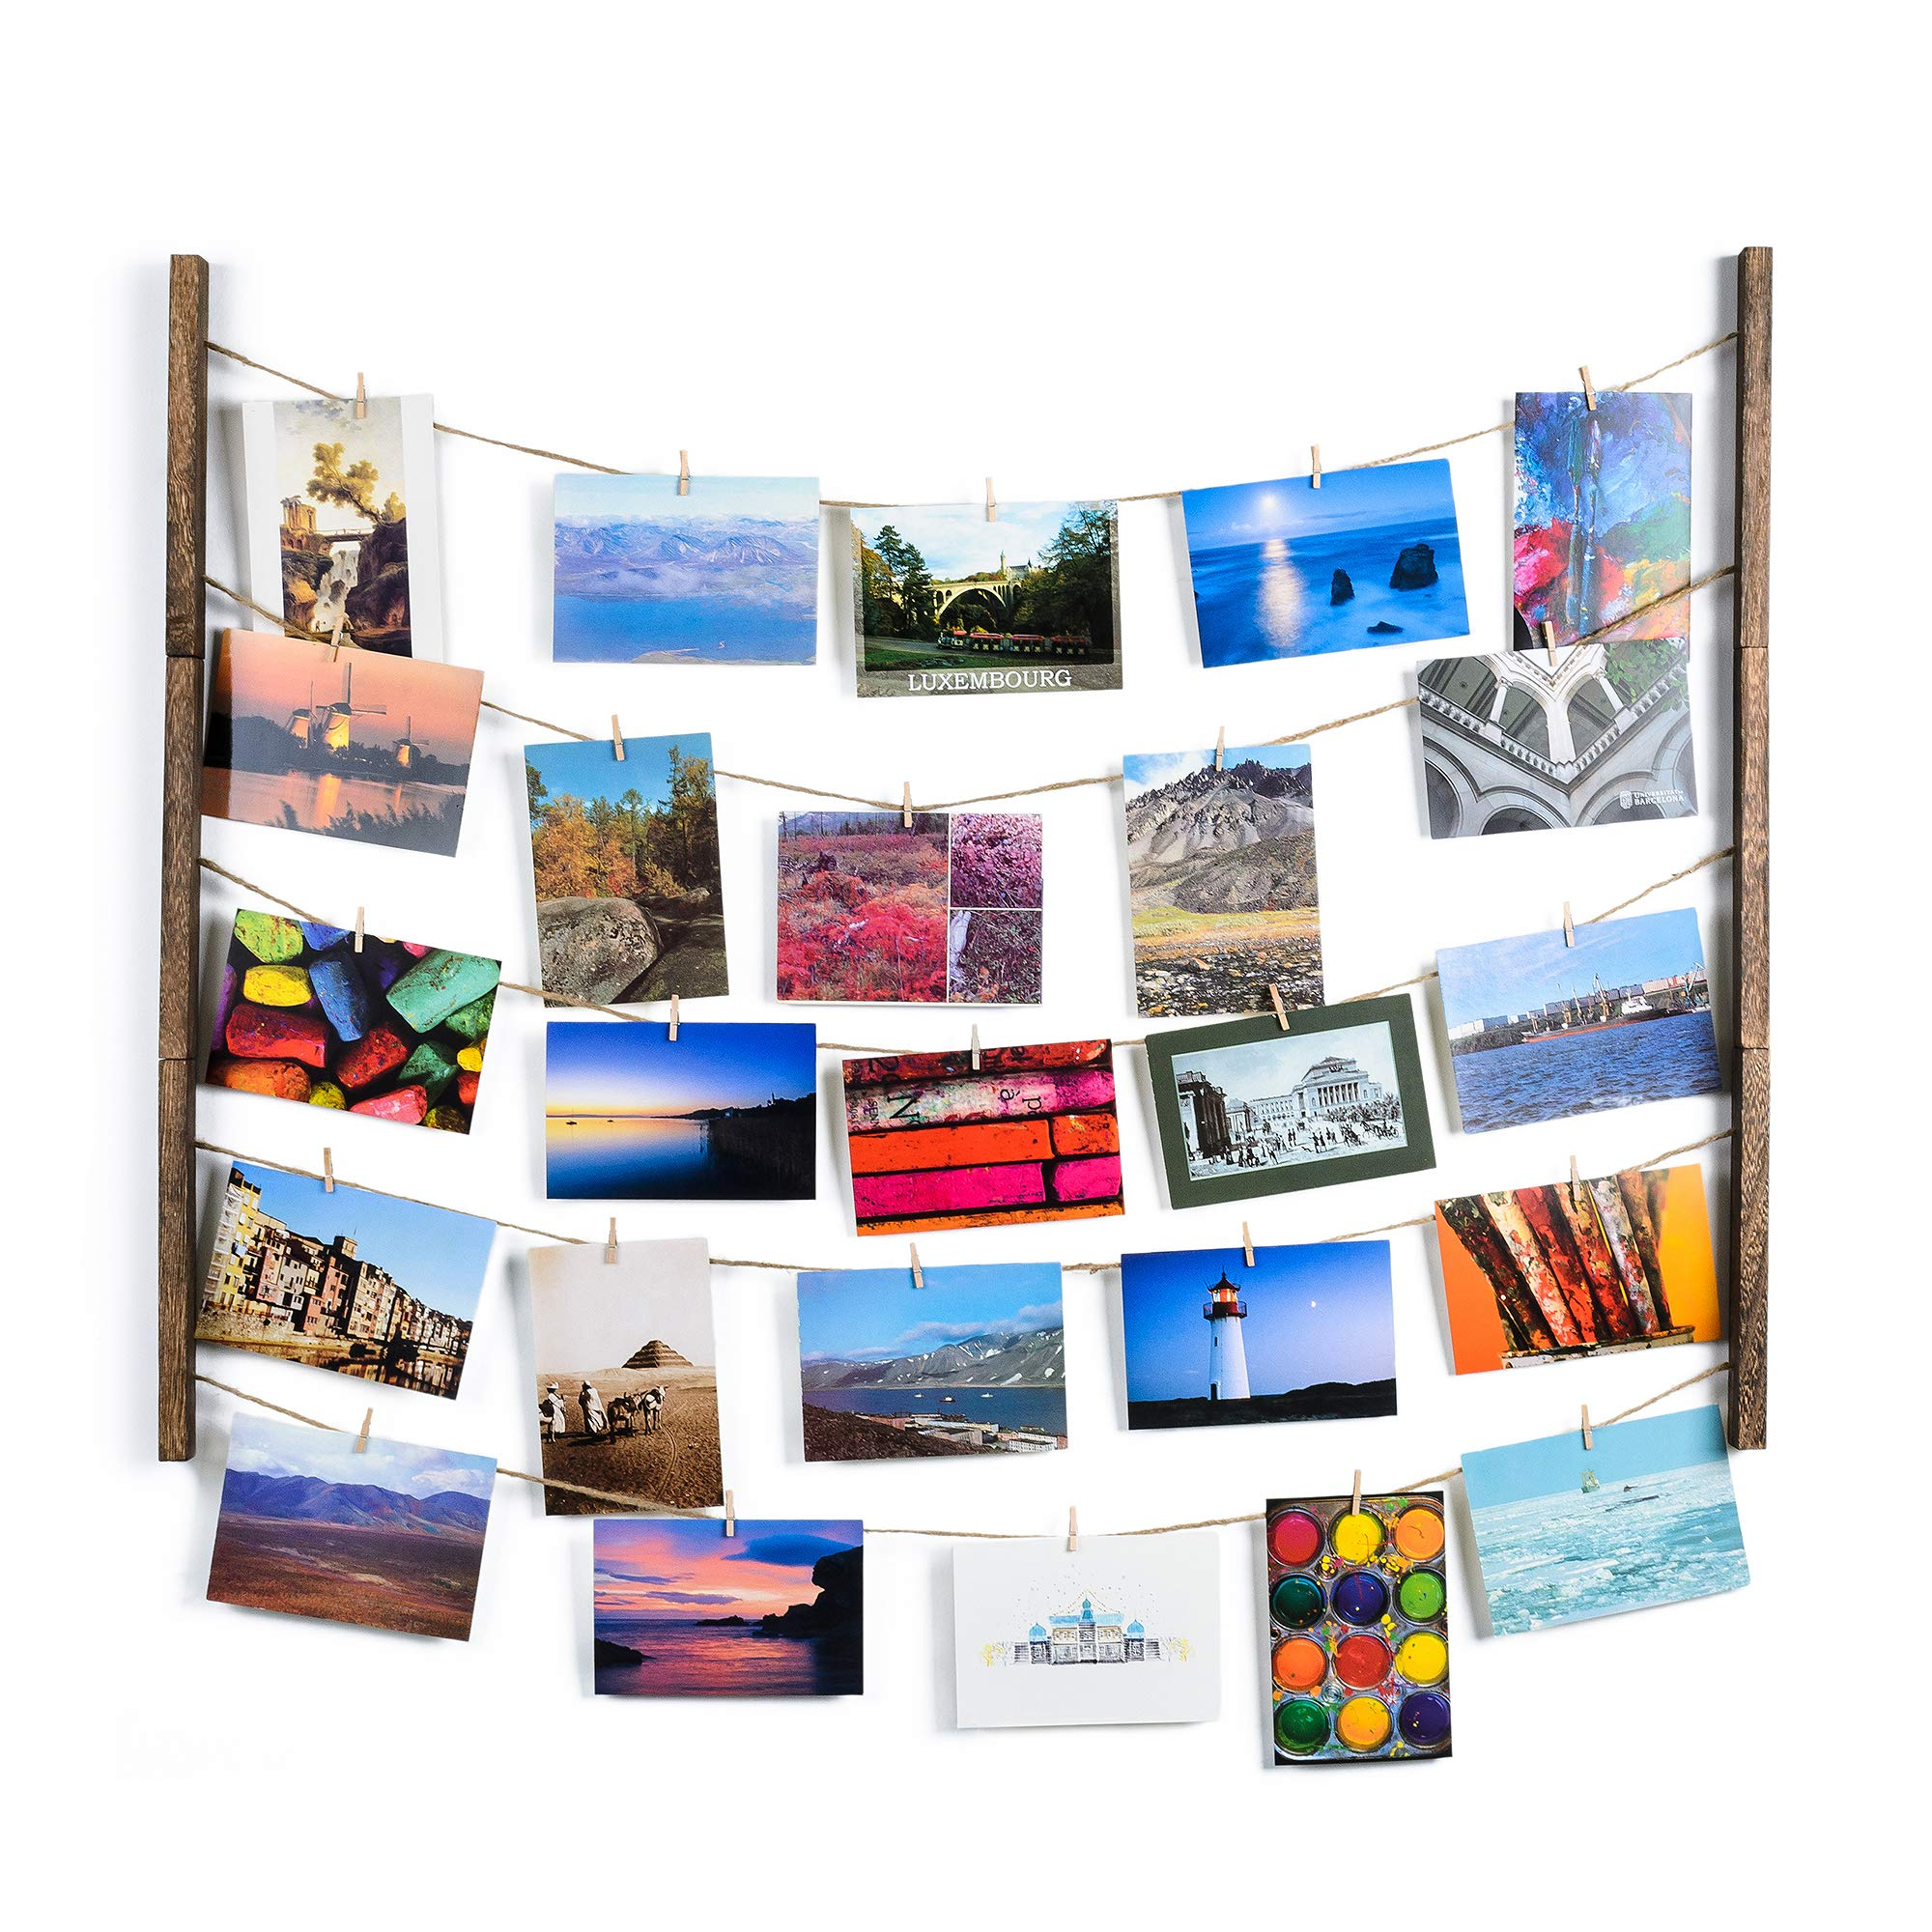 SS&Y Wood Picture Frame Collage for Multi Photo - Display Wall Decor 30'' x 26'' with 40 Clips - Vertical & Horizontal Display - Multi Pictures Organizer & Hanging Display Frames by SS&Y Group